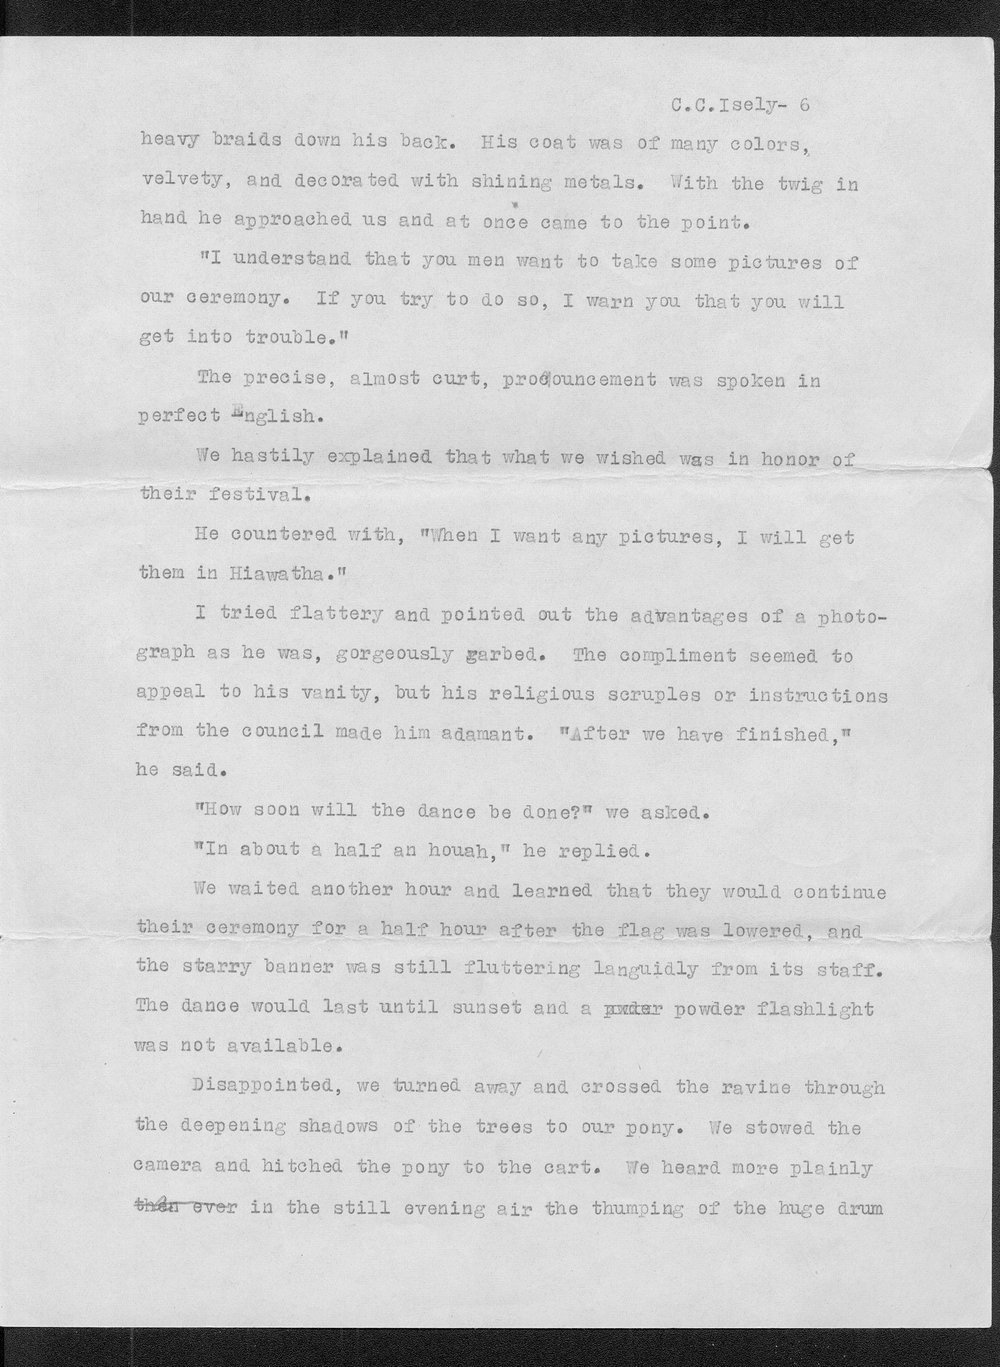 C.C. Isley to Reverend W.C. McGuire, and accompanying manuscript - 7